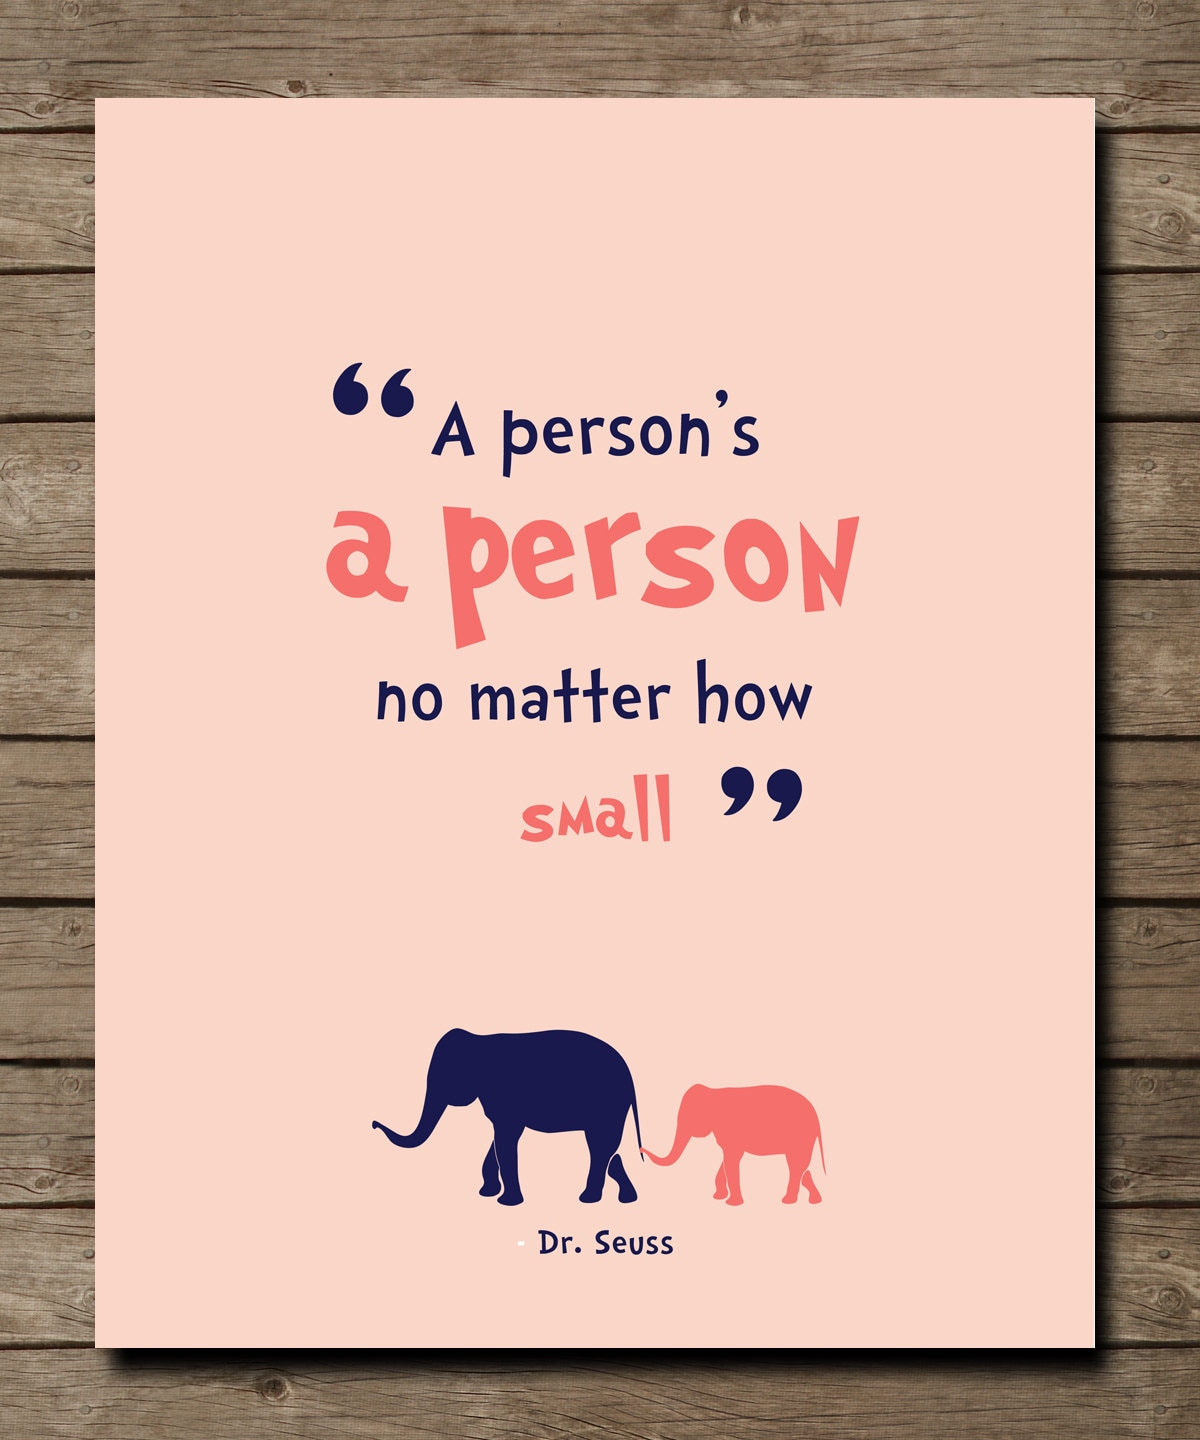 Dr Seuss Weird Love Quote Poster Drseuss Quote A Person's A Person Quote Inspiring